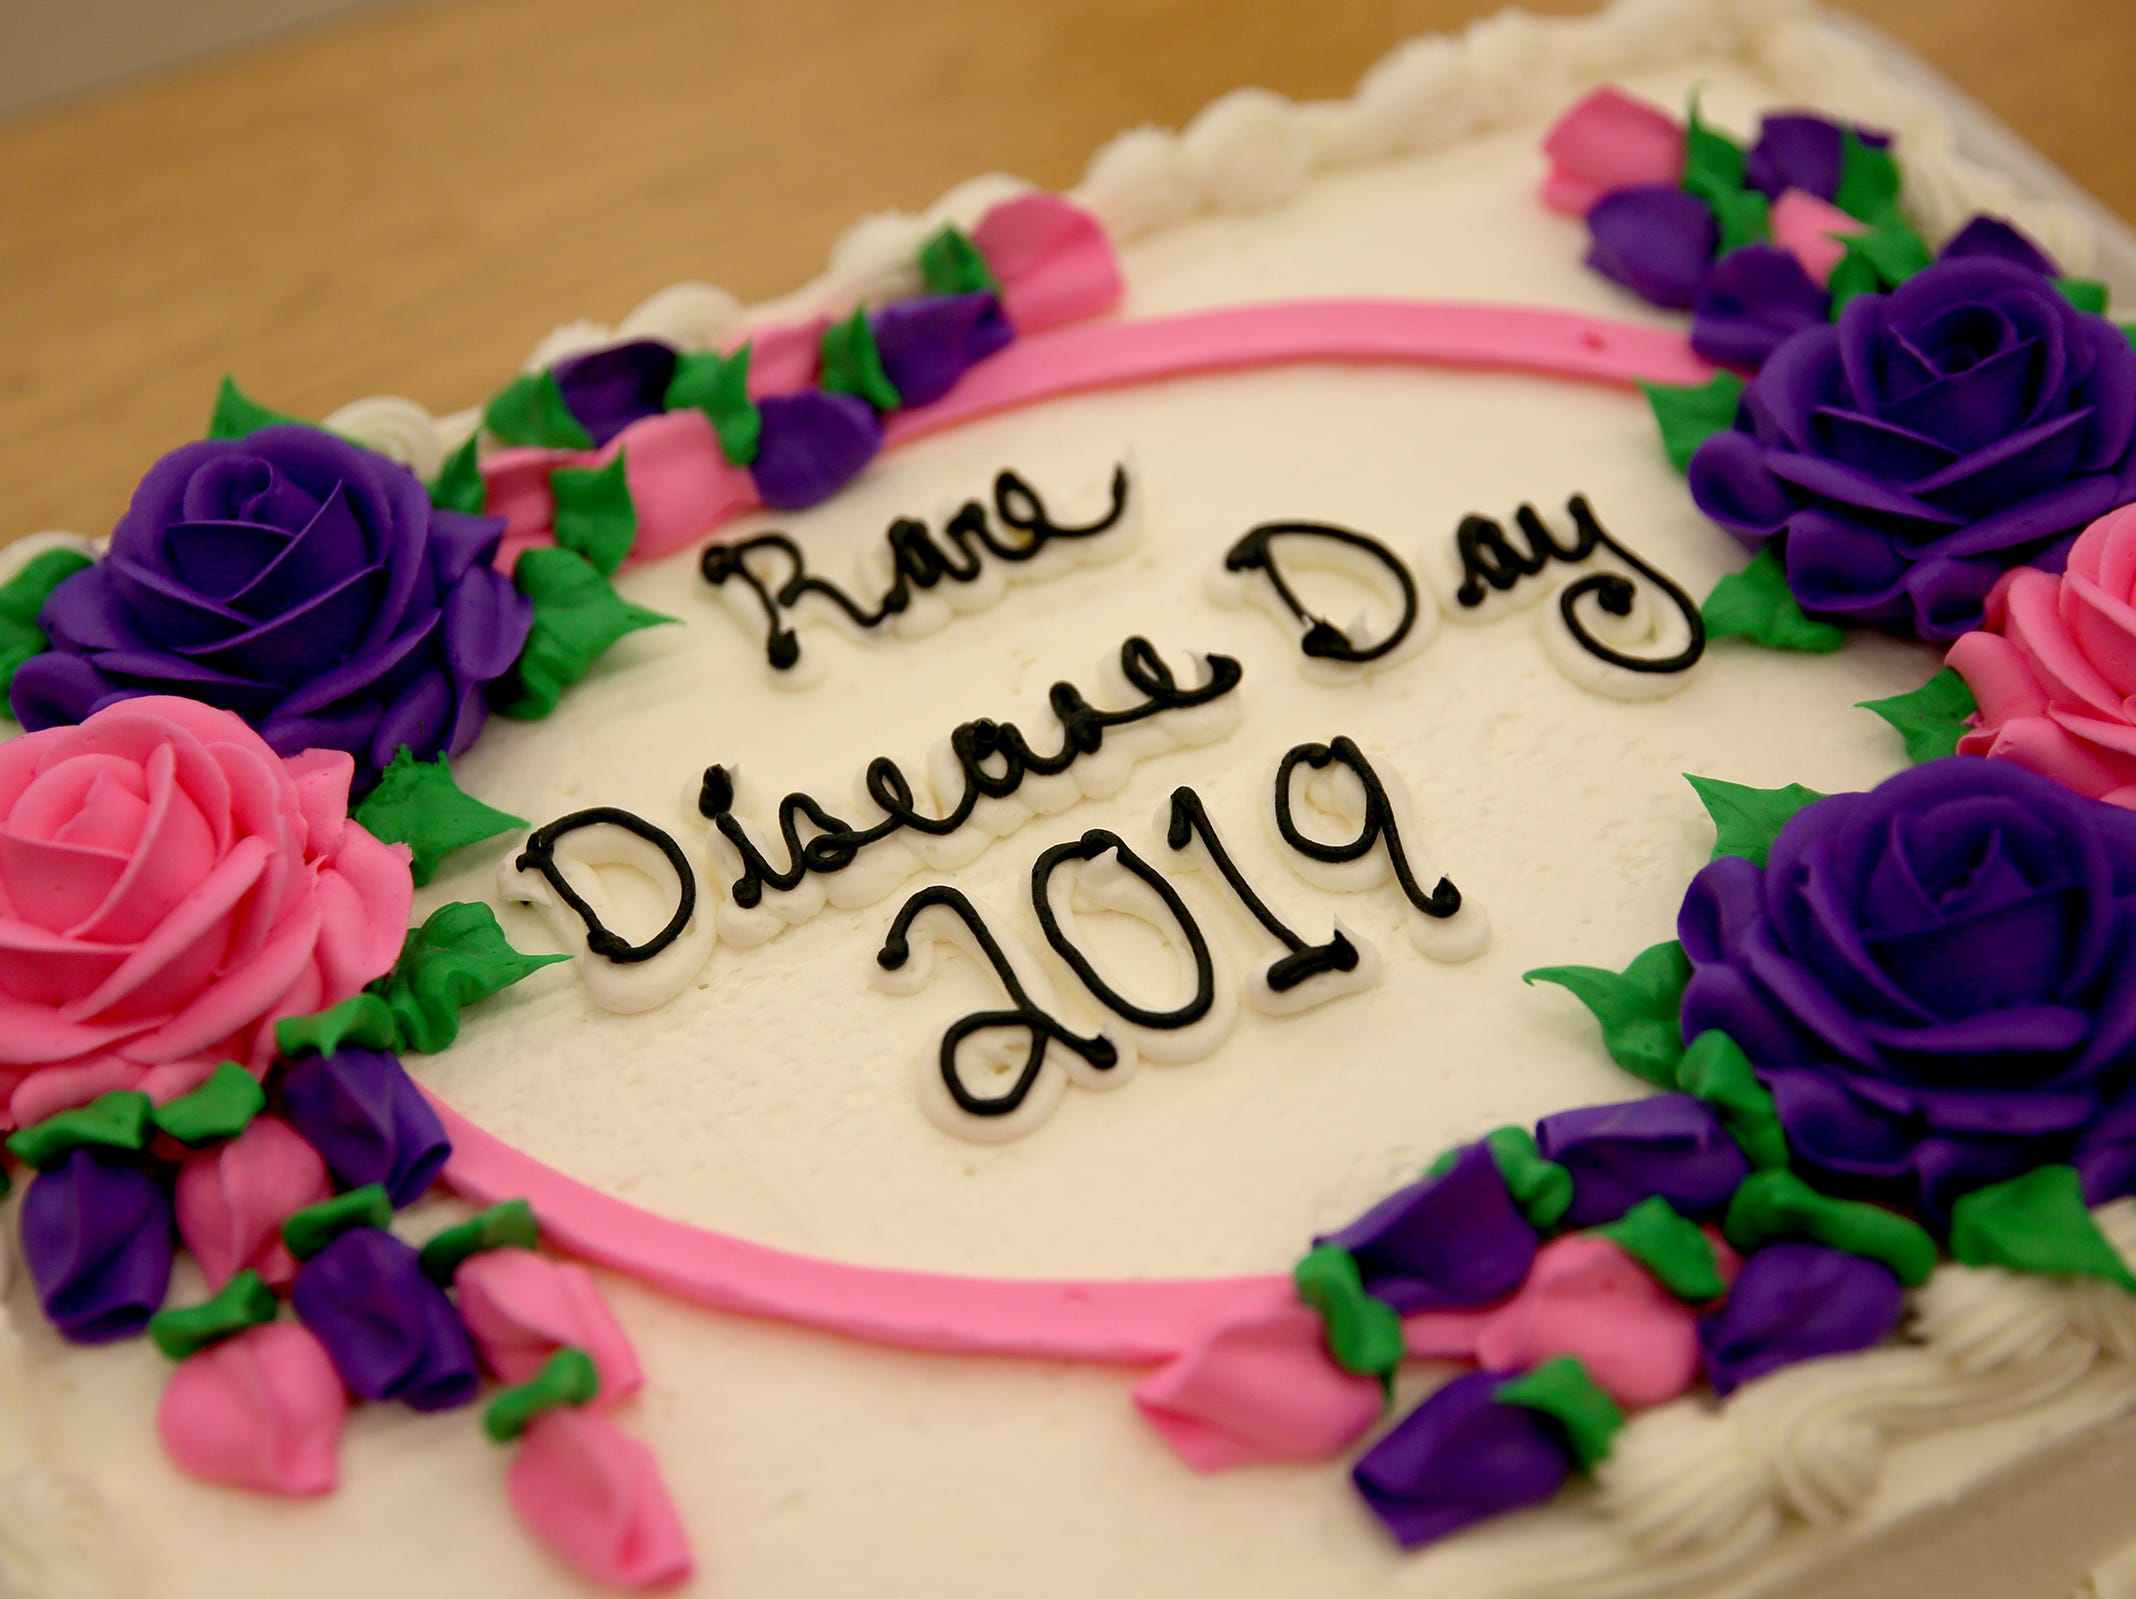 Haley Pollman and her mother Melissa Pollman serve cake to her classmates on rare disease day at Lee Elementary School in Salem on Thursday, Feb. 28, 2019.